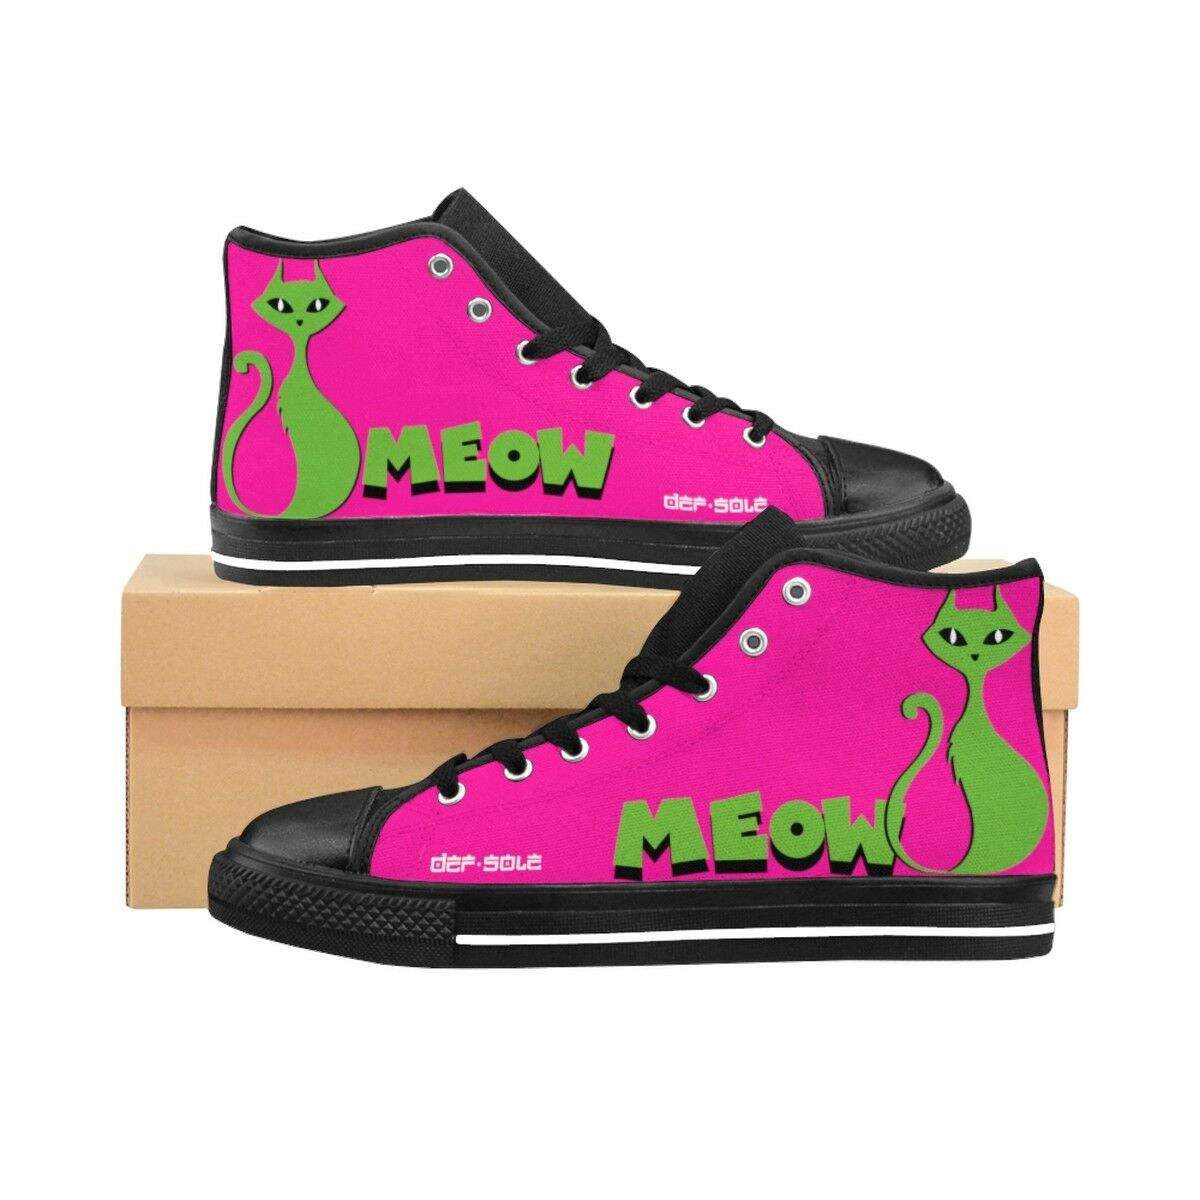 Gentleman/Lady Cat's Meow ladies High-top Sneakers Cheap cheapest cheaper